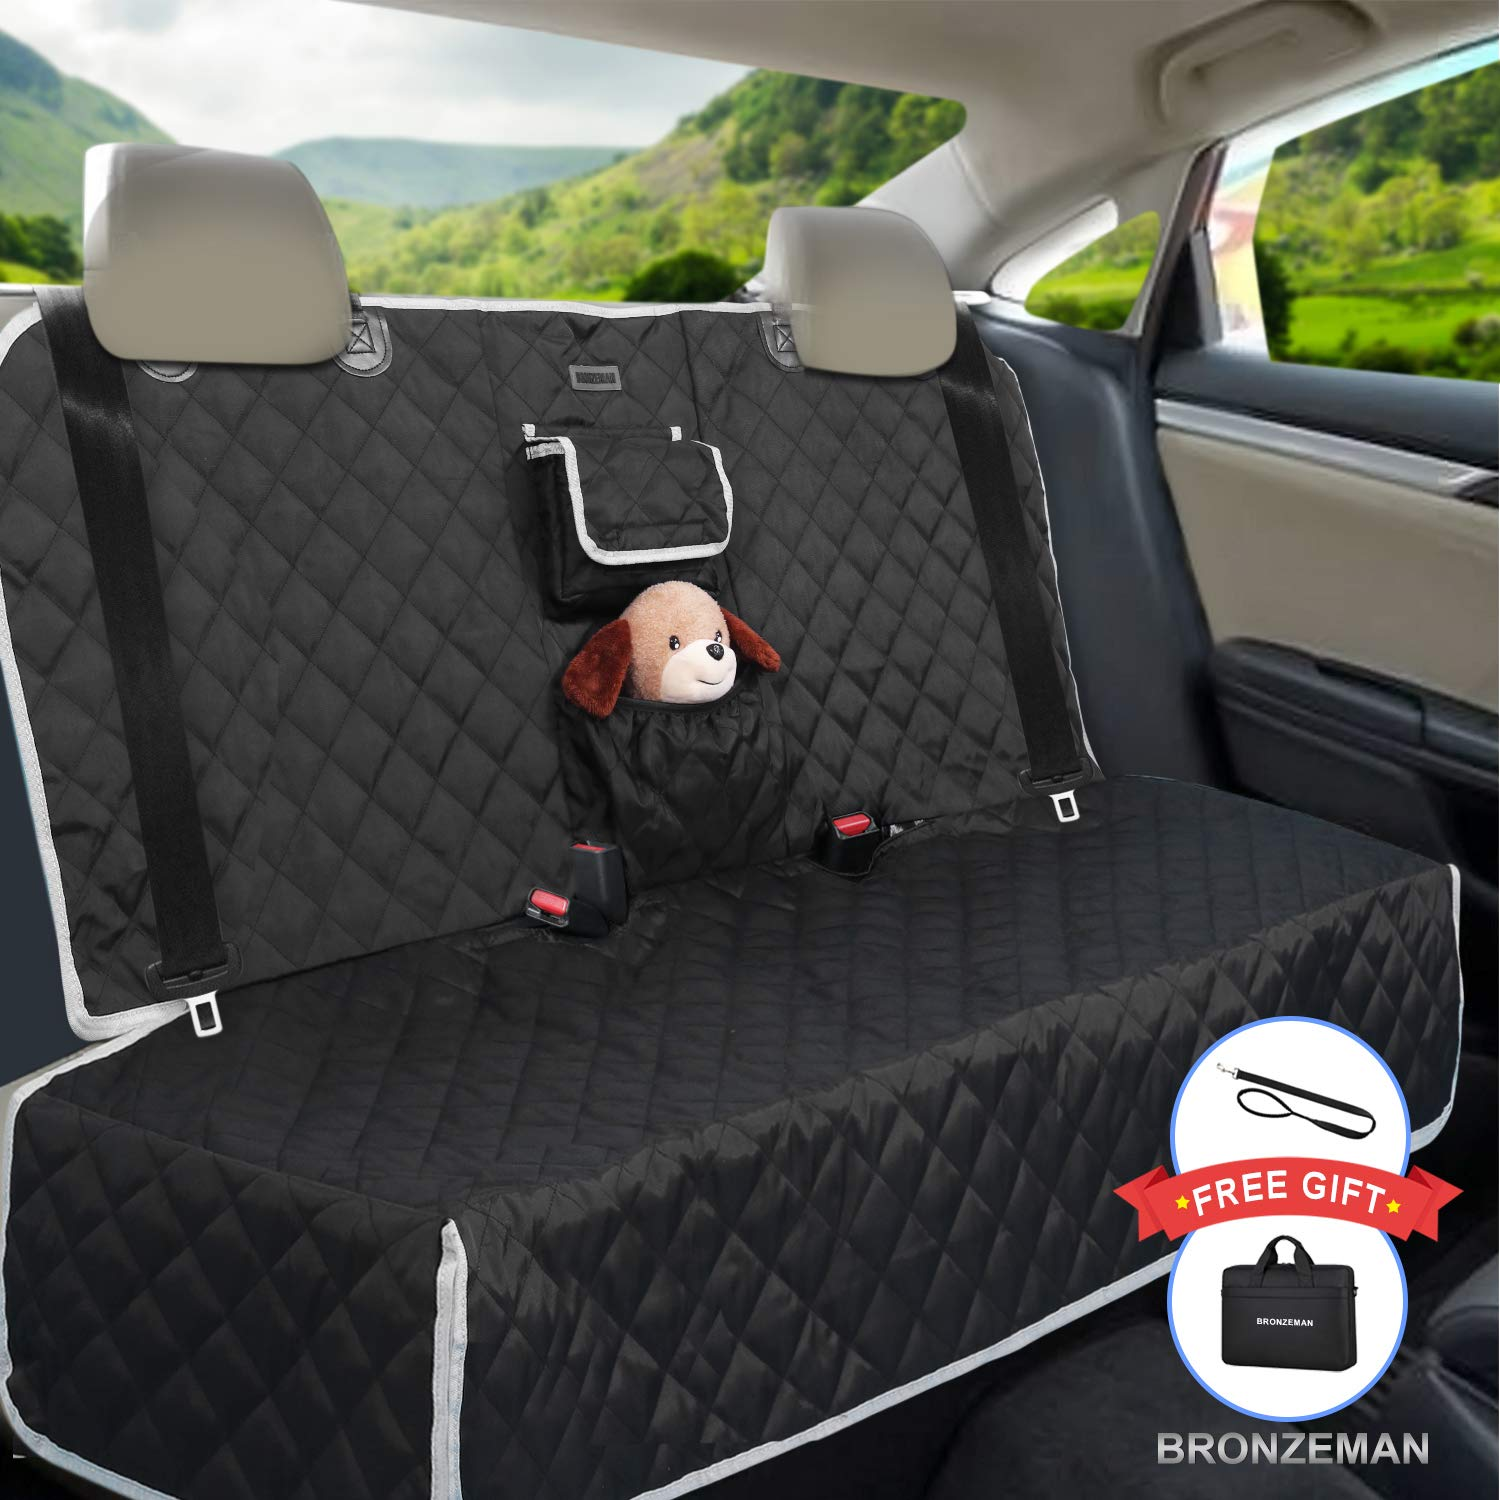 Dog Seat Cover for Back Seat - 100% Waterproof,Nonslip Bench Seat Cover Compatible for Middle Seat Belt | Strong & Durable, Multiuse,Fits All Cars | Bonus Gifts Pack Bag,Dog Leash, Buckle (Black) by BRONZEMAN